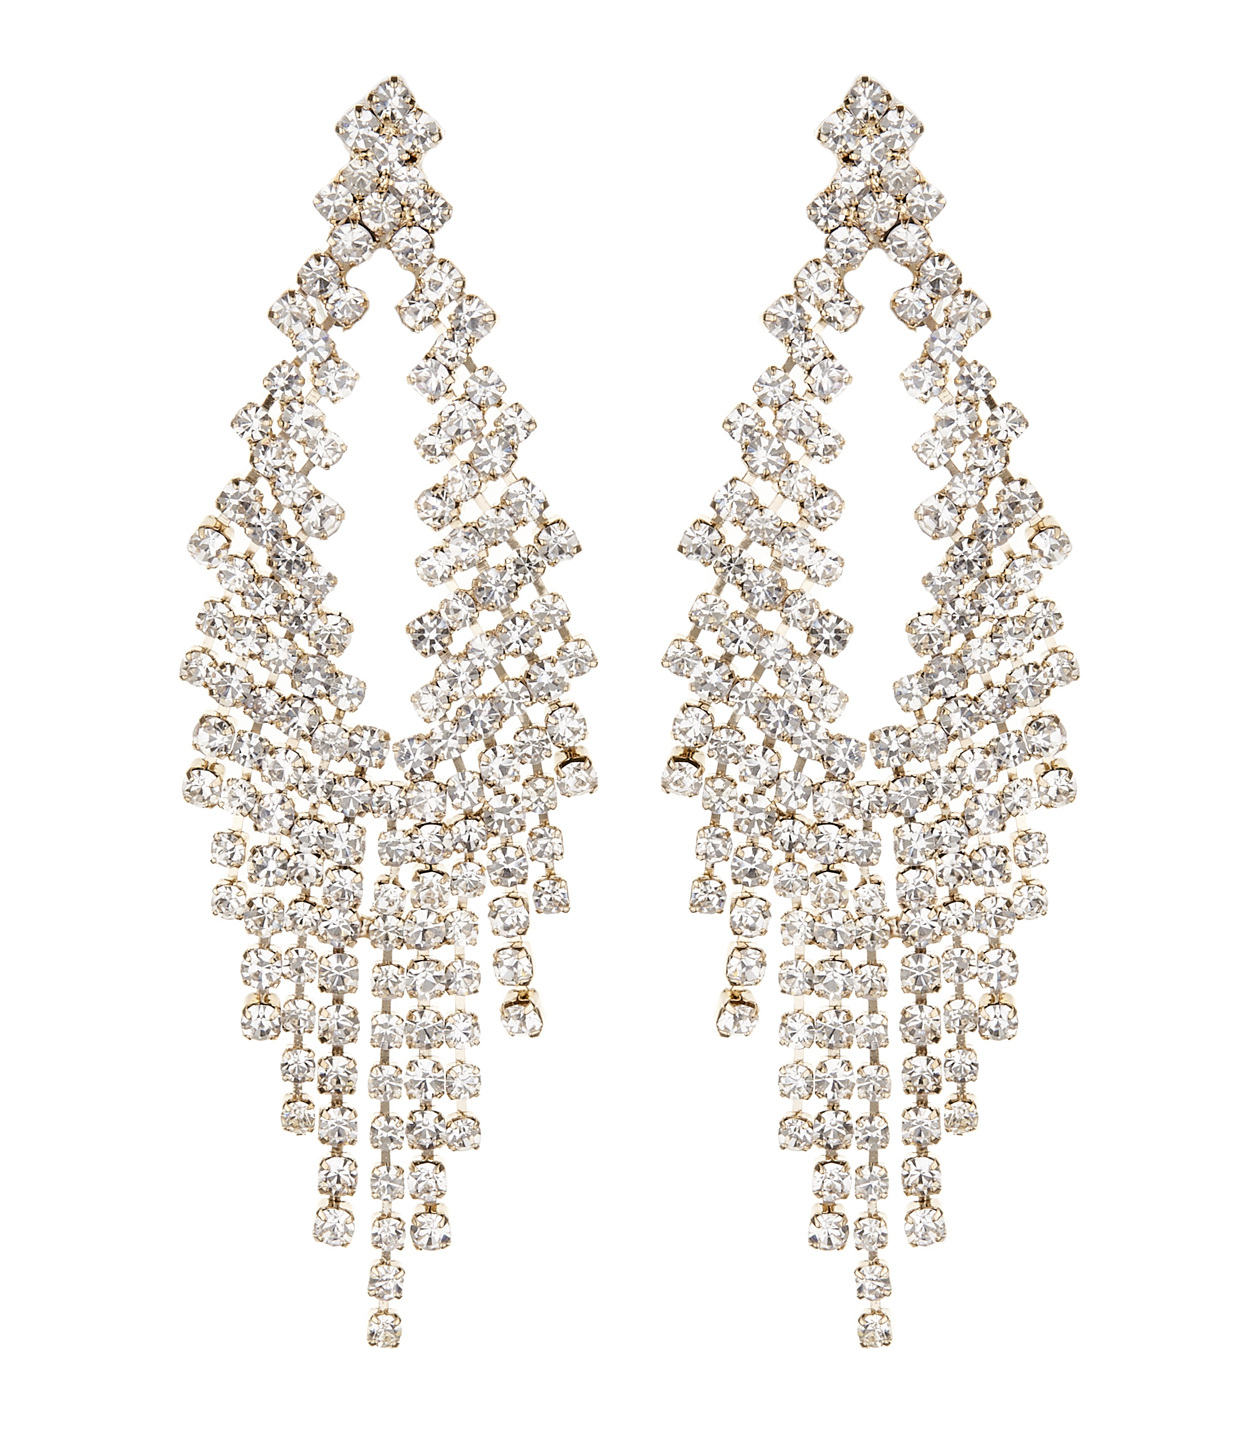 Clip On Earrings - Caca G - gold chandelier earring with clear crystals